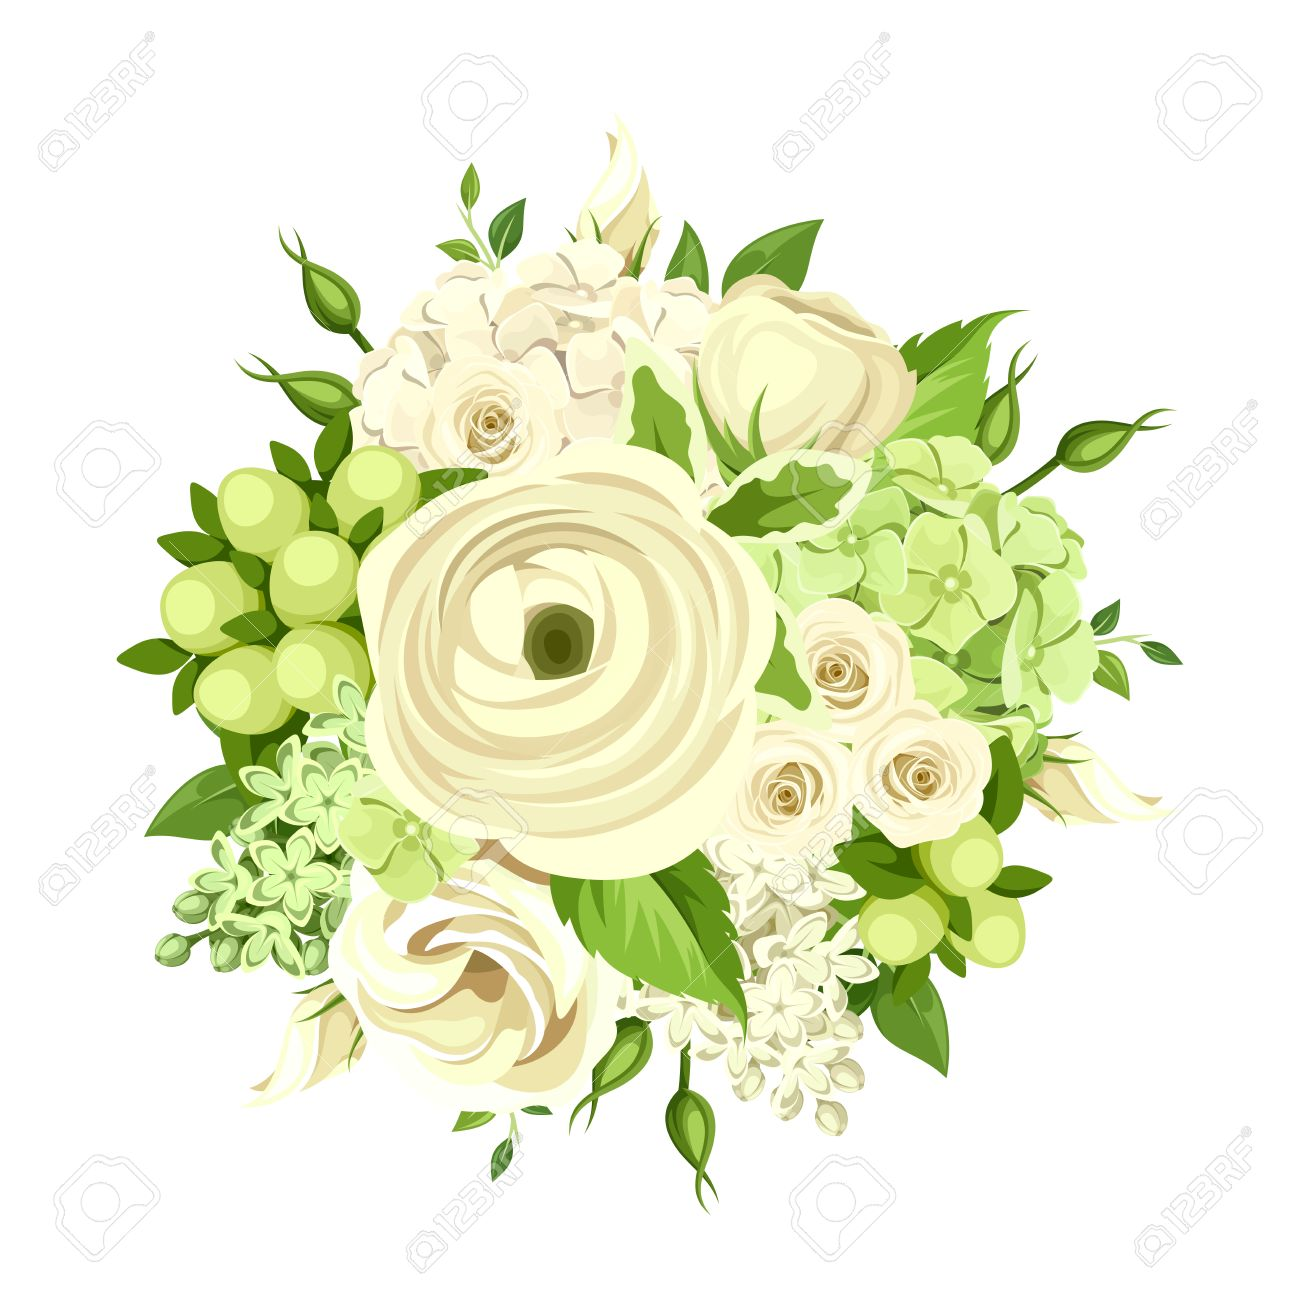 Vector Bouquet With White And Green Roses, Ranunculus, Lisianthus ...